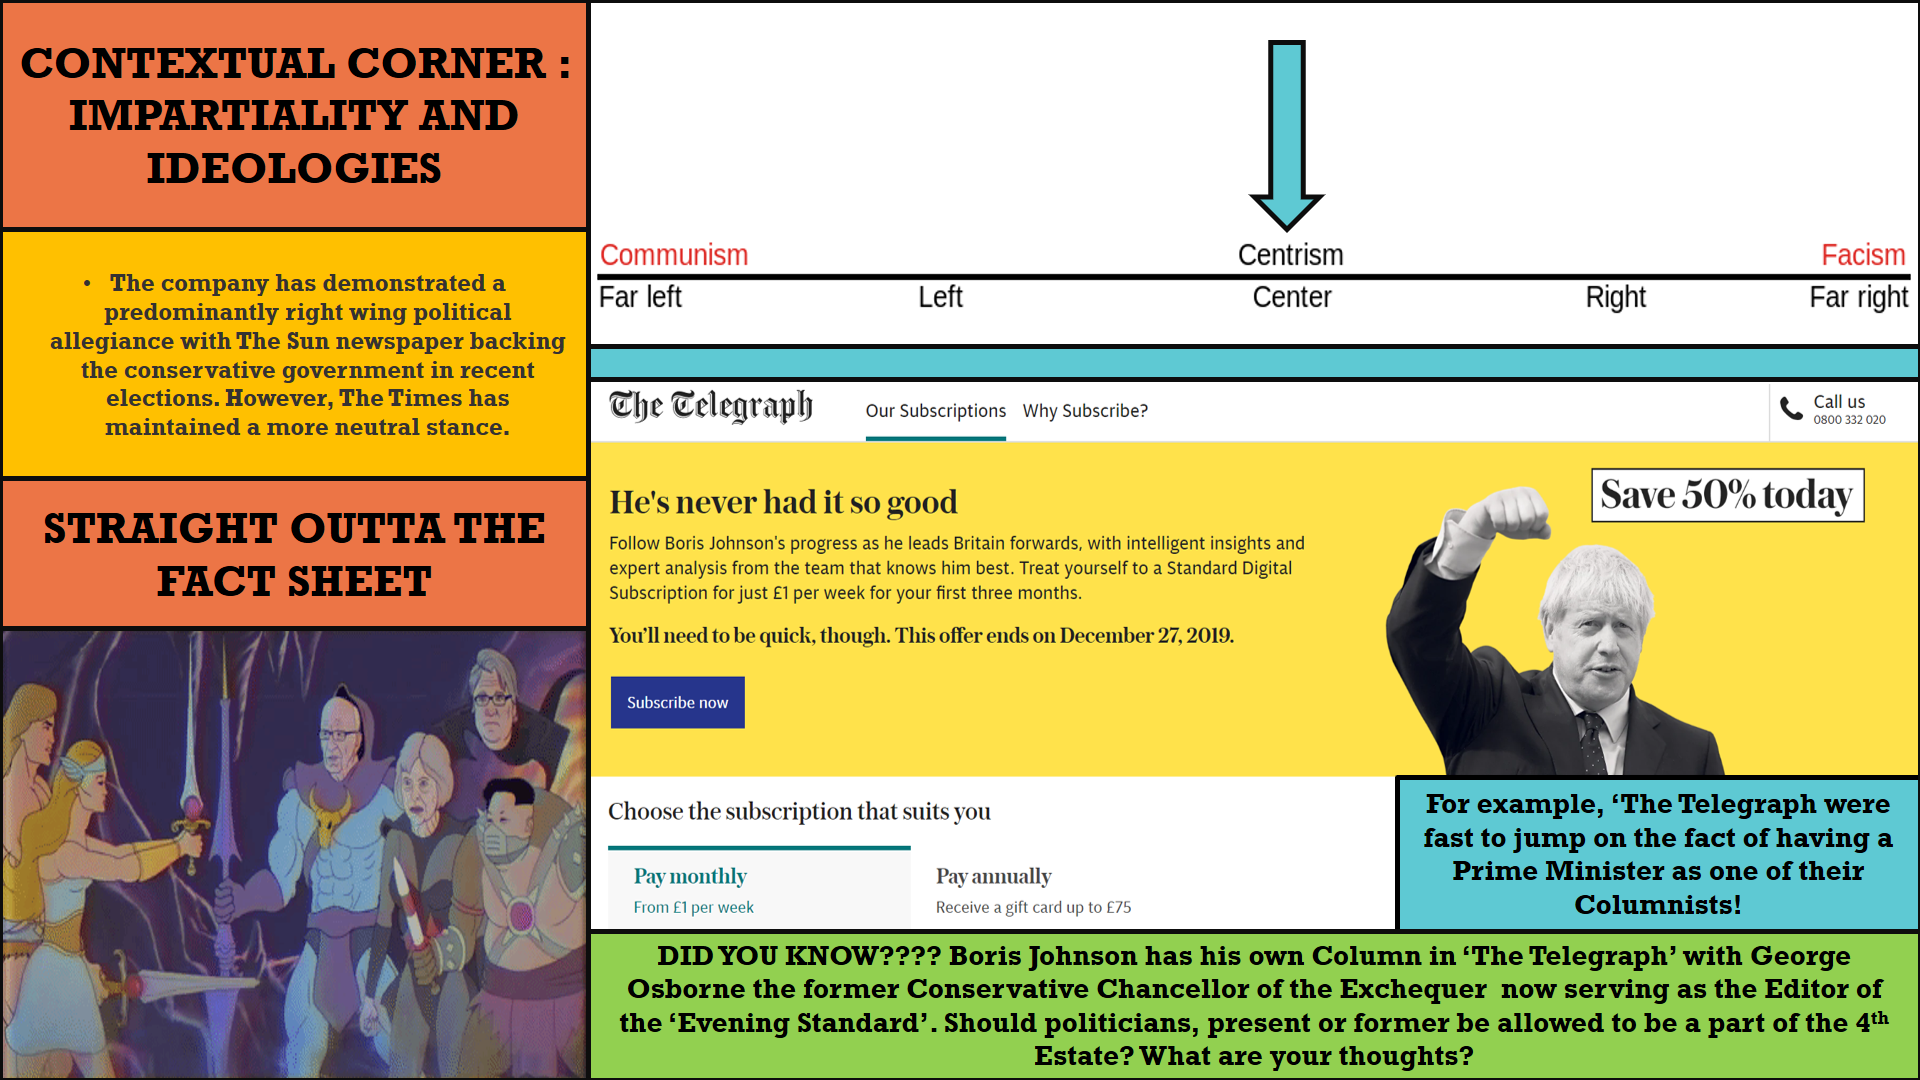 THE COMPLETE 2021 ONWARDS A LEVEL NEWSPAPER BUNDLE: 'DAILY MIRROR' AND 'THE TIMES